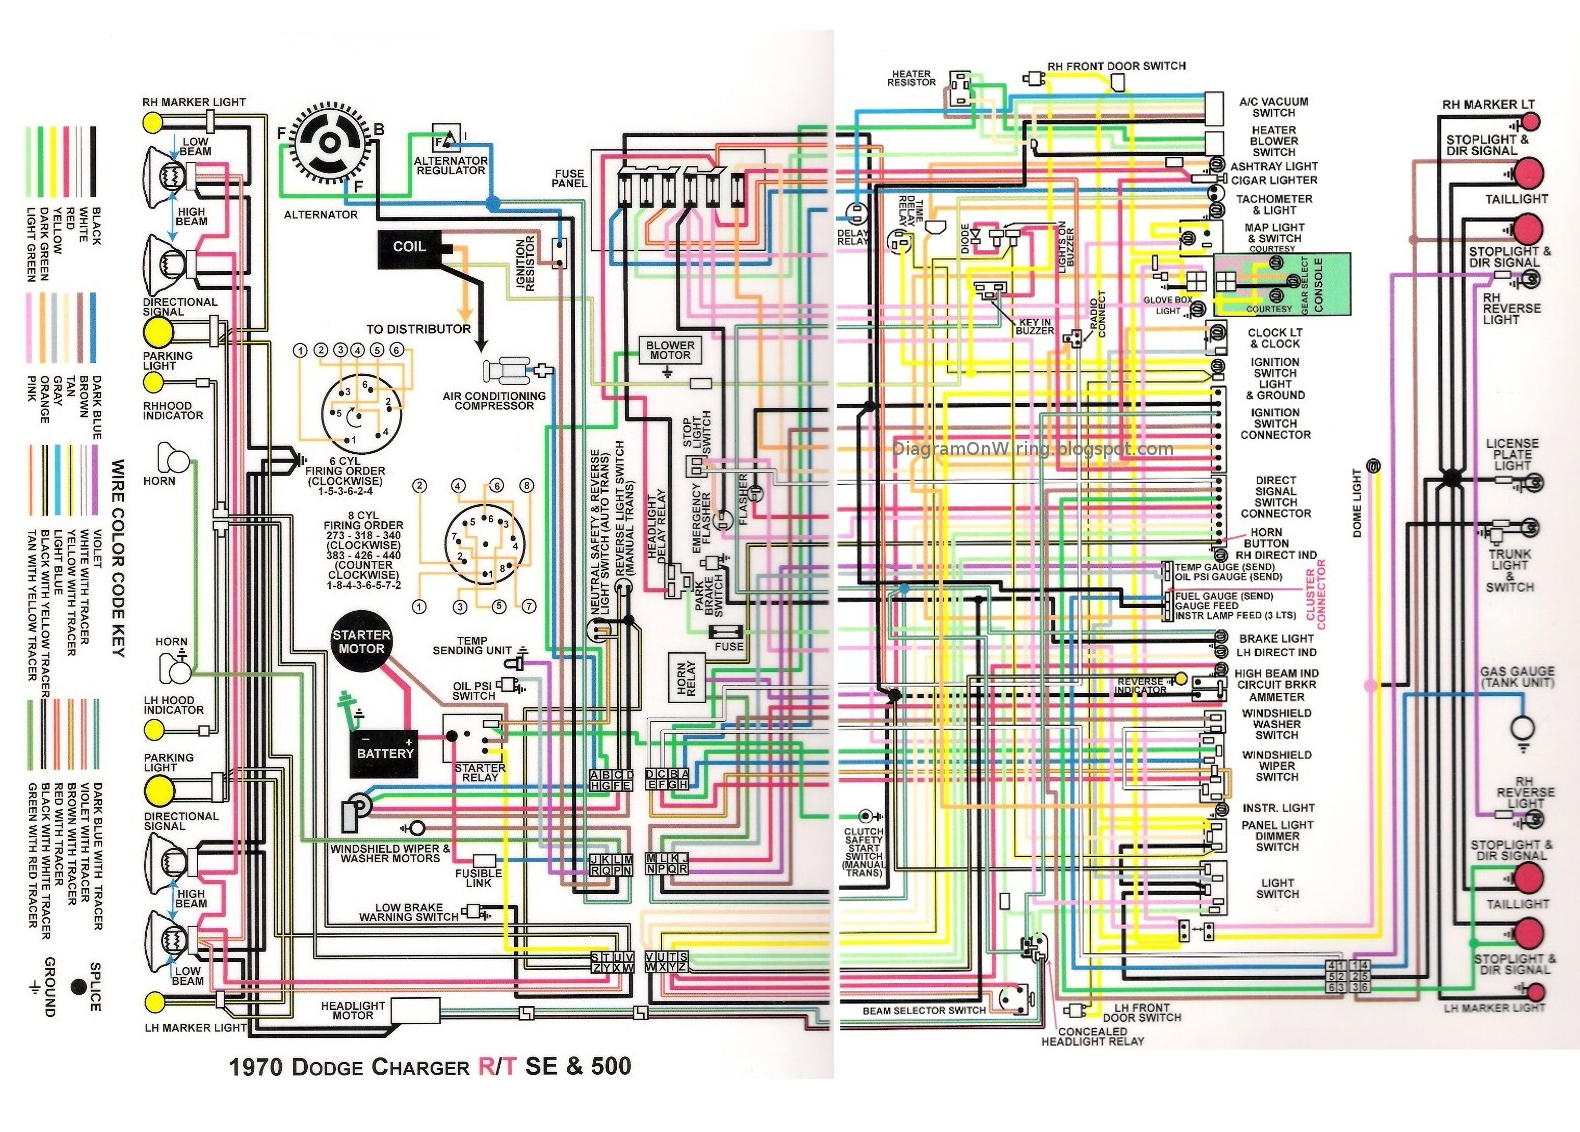 2010 dodge challenger wiring diagram wiring diagram origin 2008 dodge charger engine diagram 1970 dodge charger [ 1580 x 1132 Pixel ]